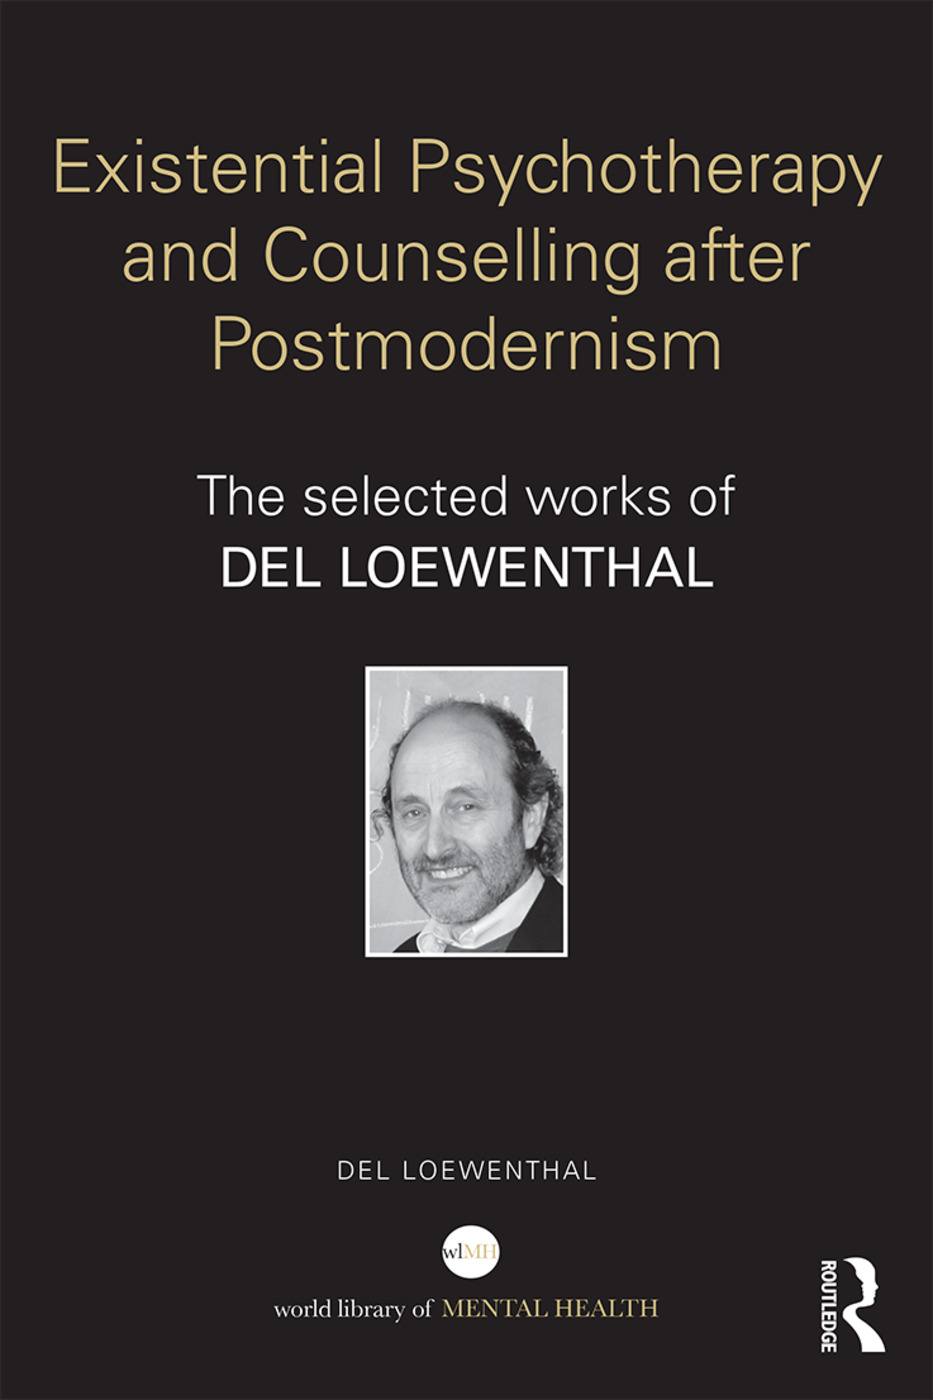 Existential Psychotherapy and Counselling after Postmodernism: The selected works of Del Loewenthal book cover